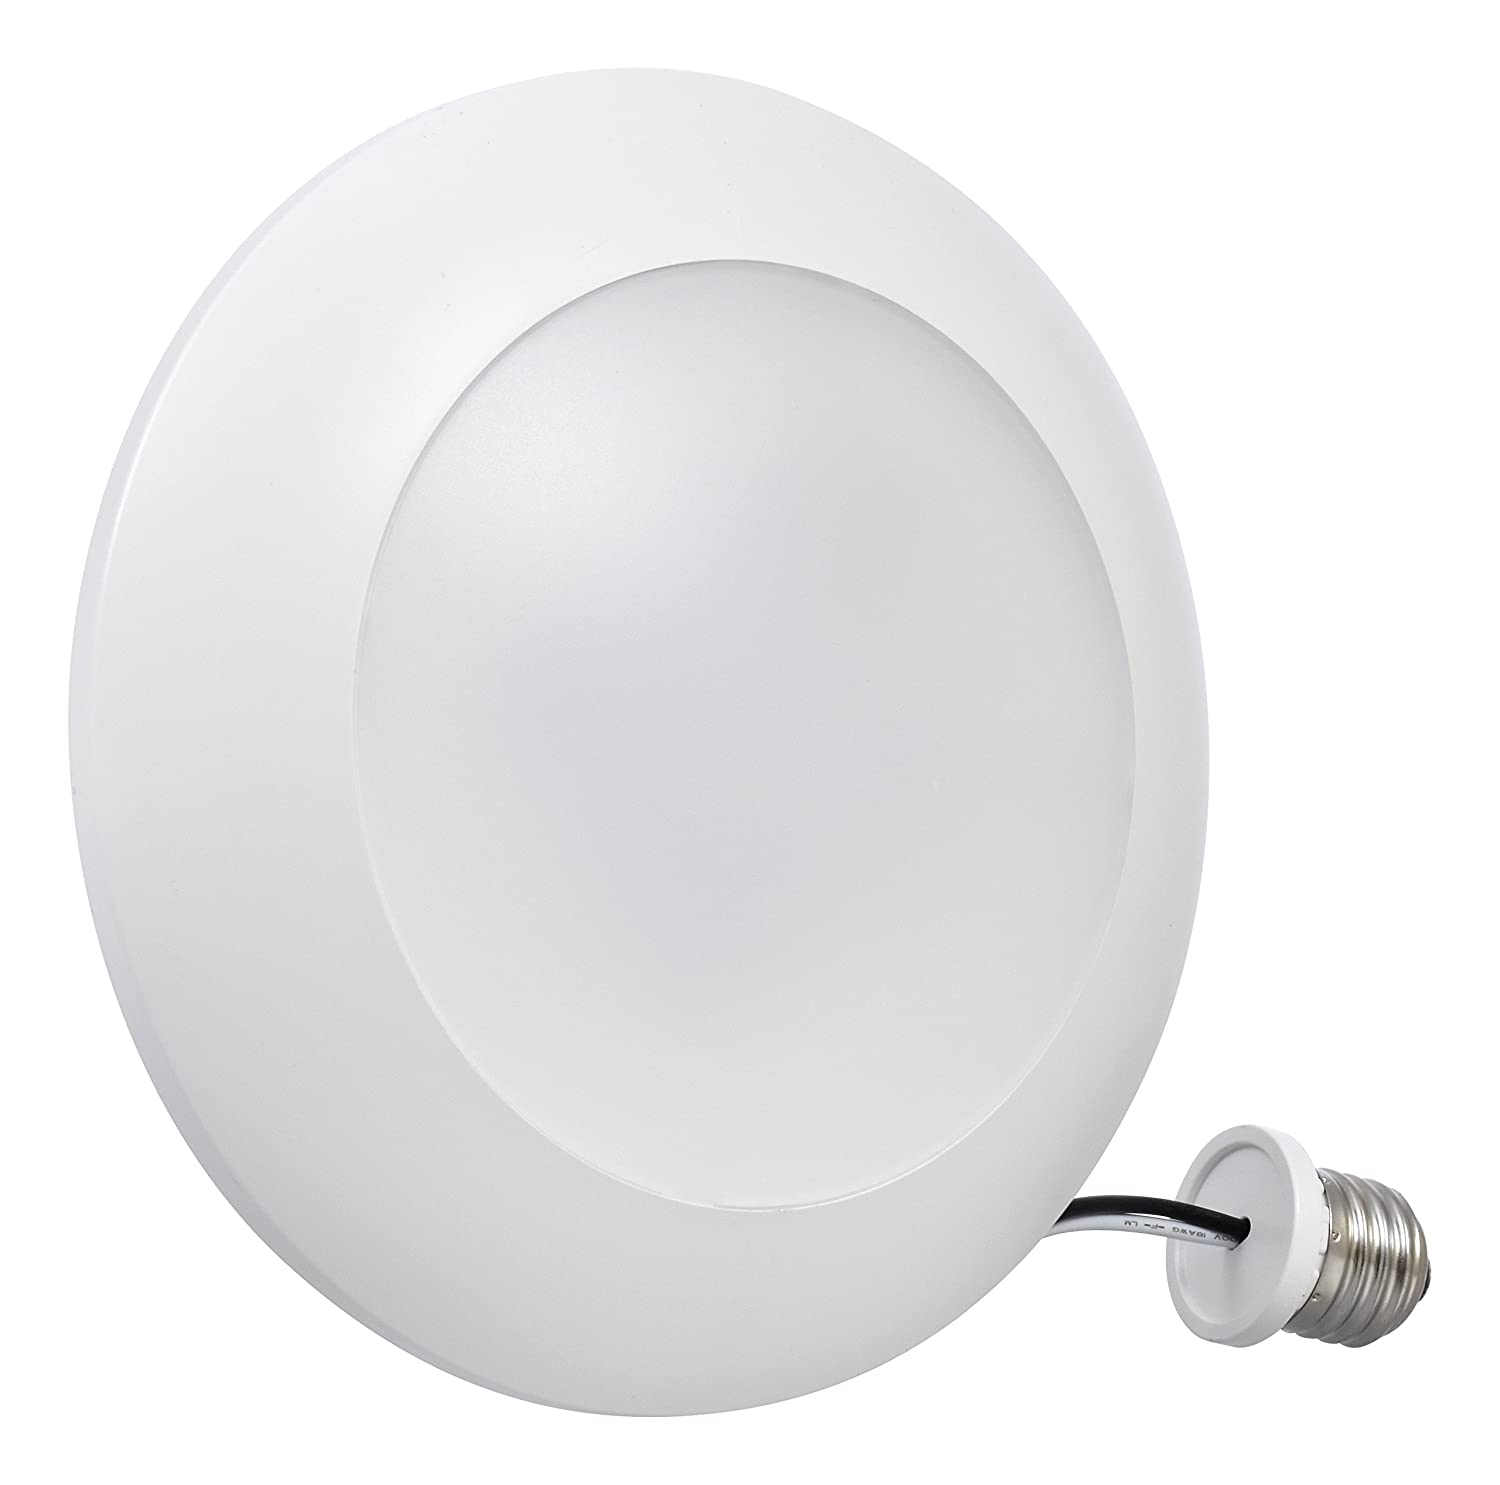 Sylvania Home Lighting 75046 Light Disk Sylvania Ultra LED 85w Equivalent, Dimmable, Efficient 13W, Daylilght 5000K